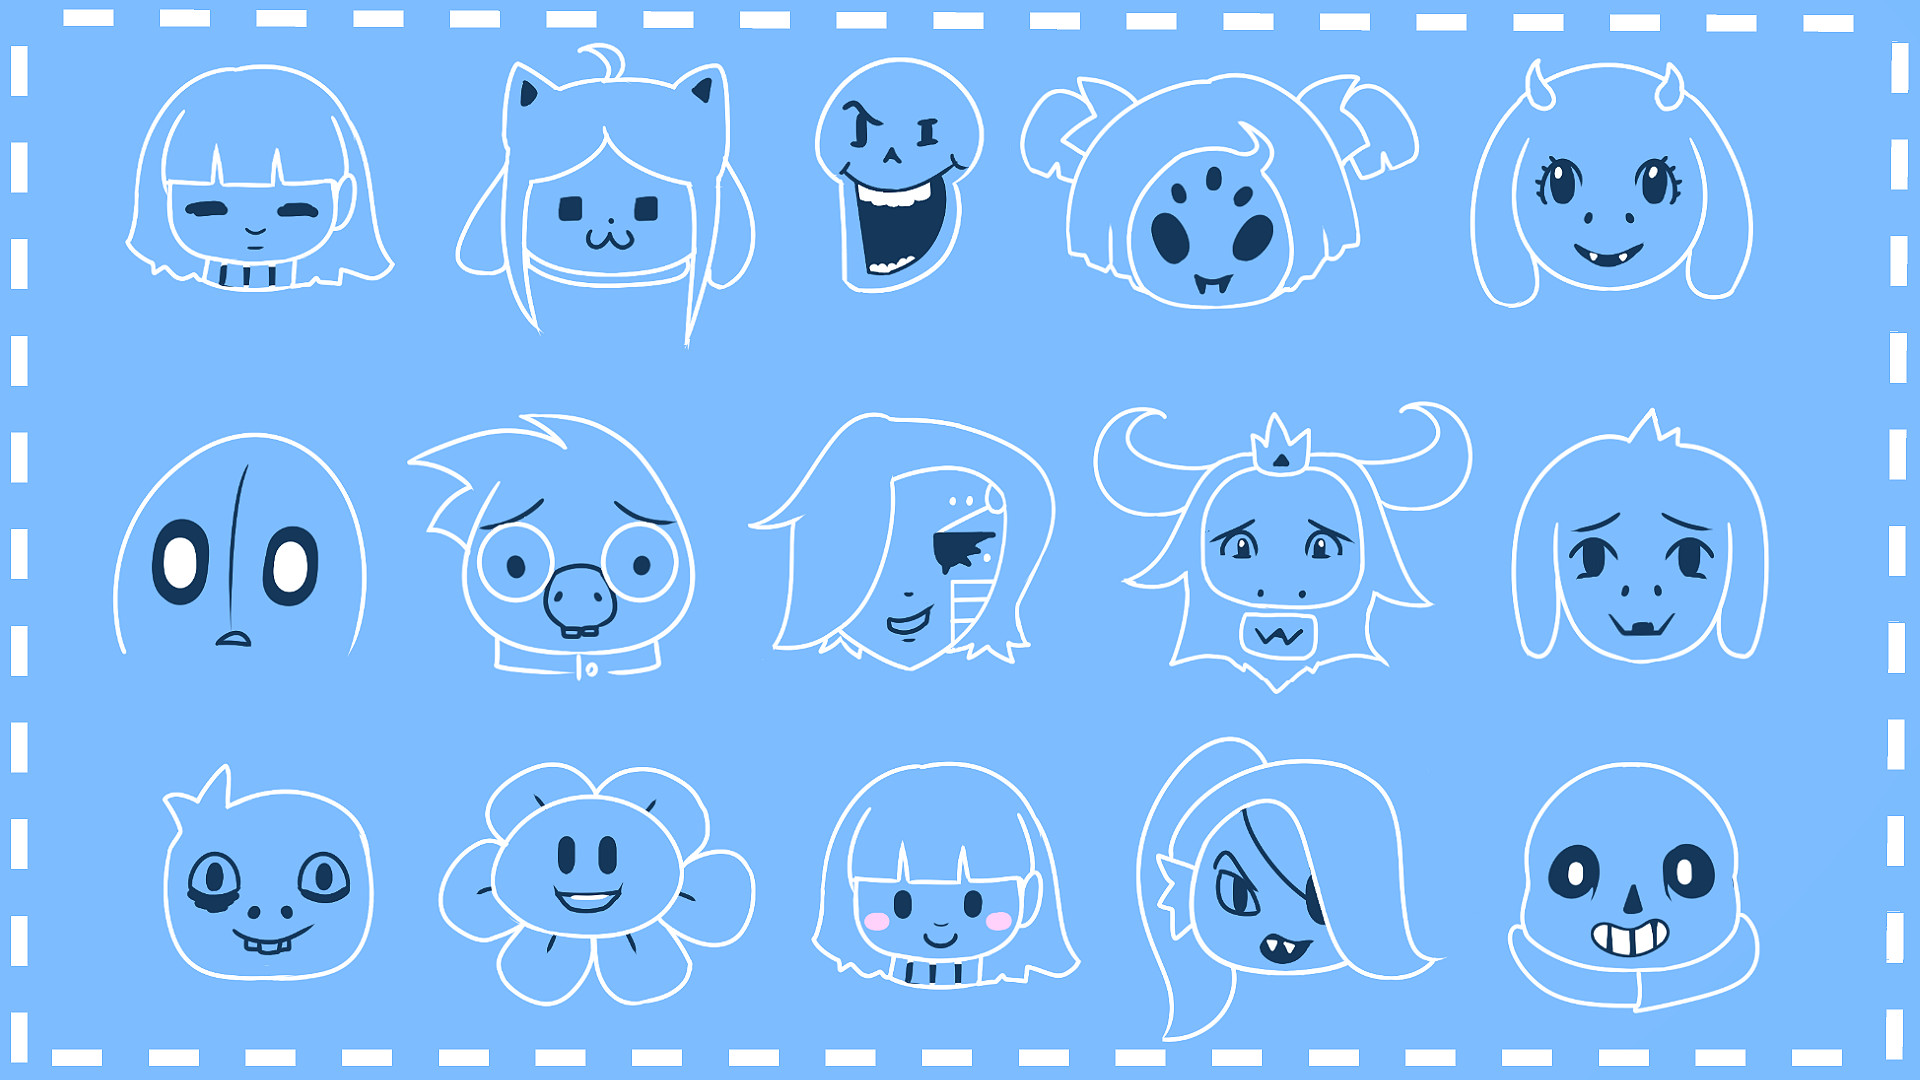 High Quality Undertale Images Collection for Desktop